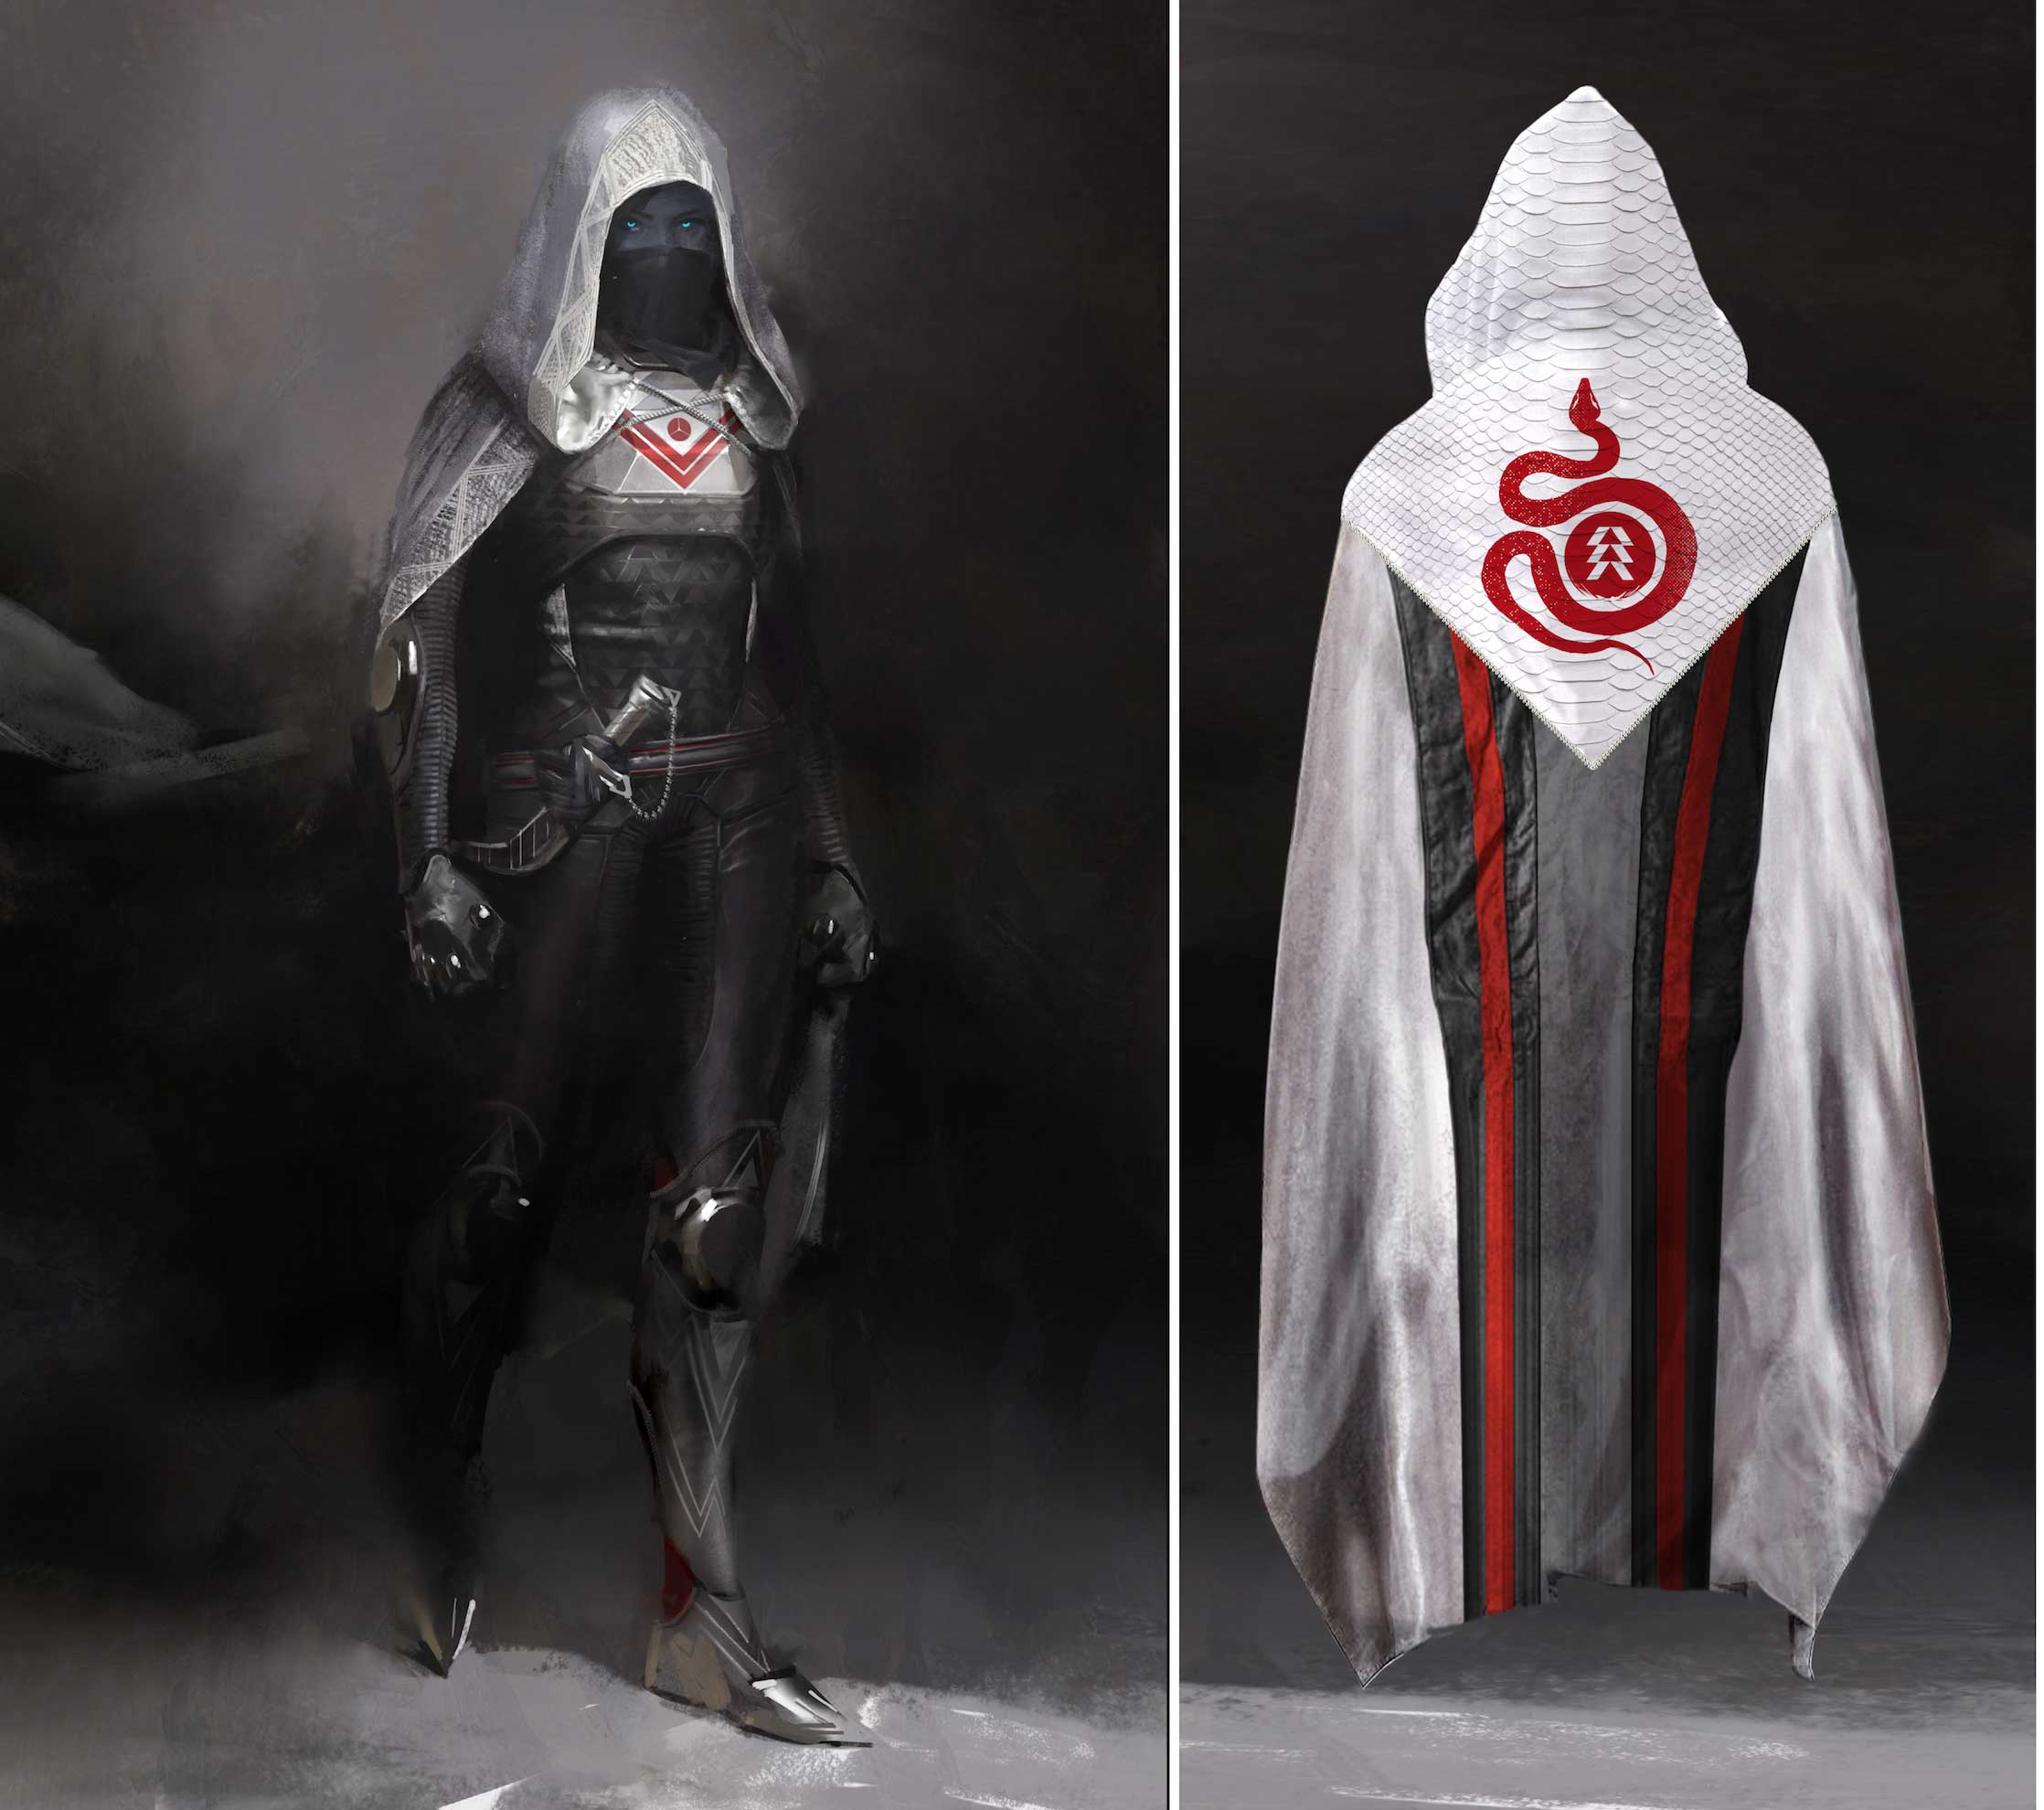 Let's Scour These Destiny 2 Artworks And Concepts For